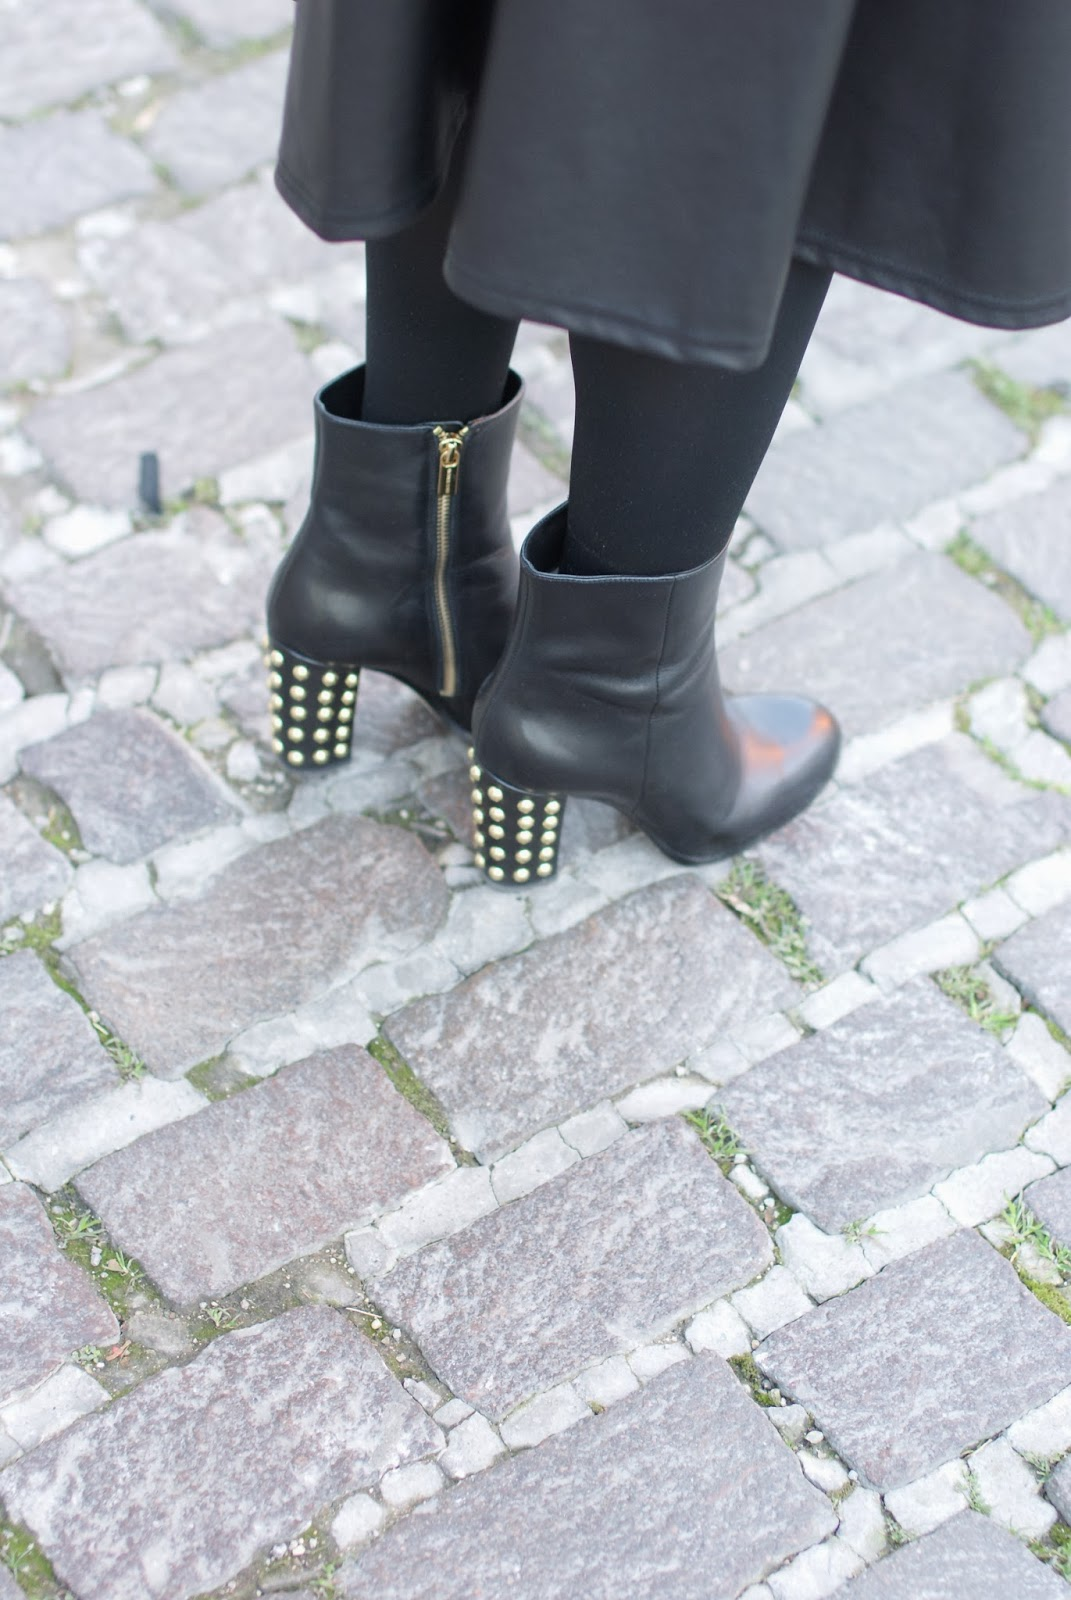 michael kors linden boots, studded heels, fashion and cookies, fashion blogger nail polish, fashion and cookies, fashion blogger